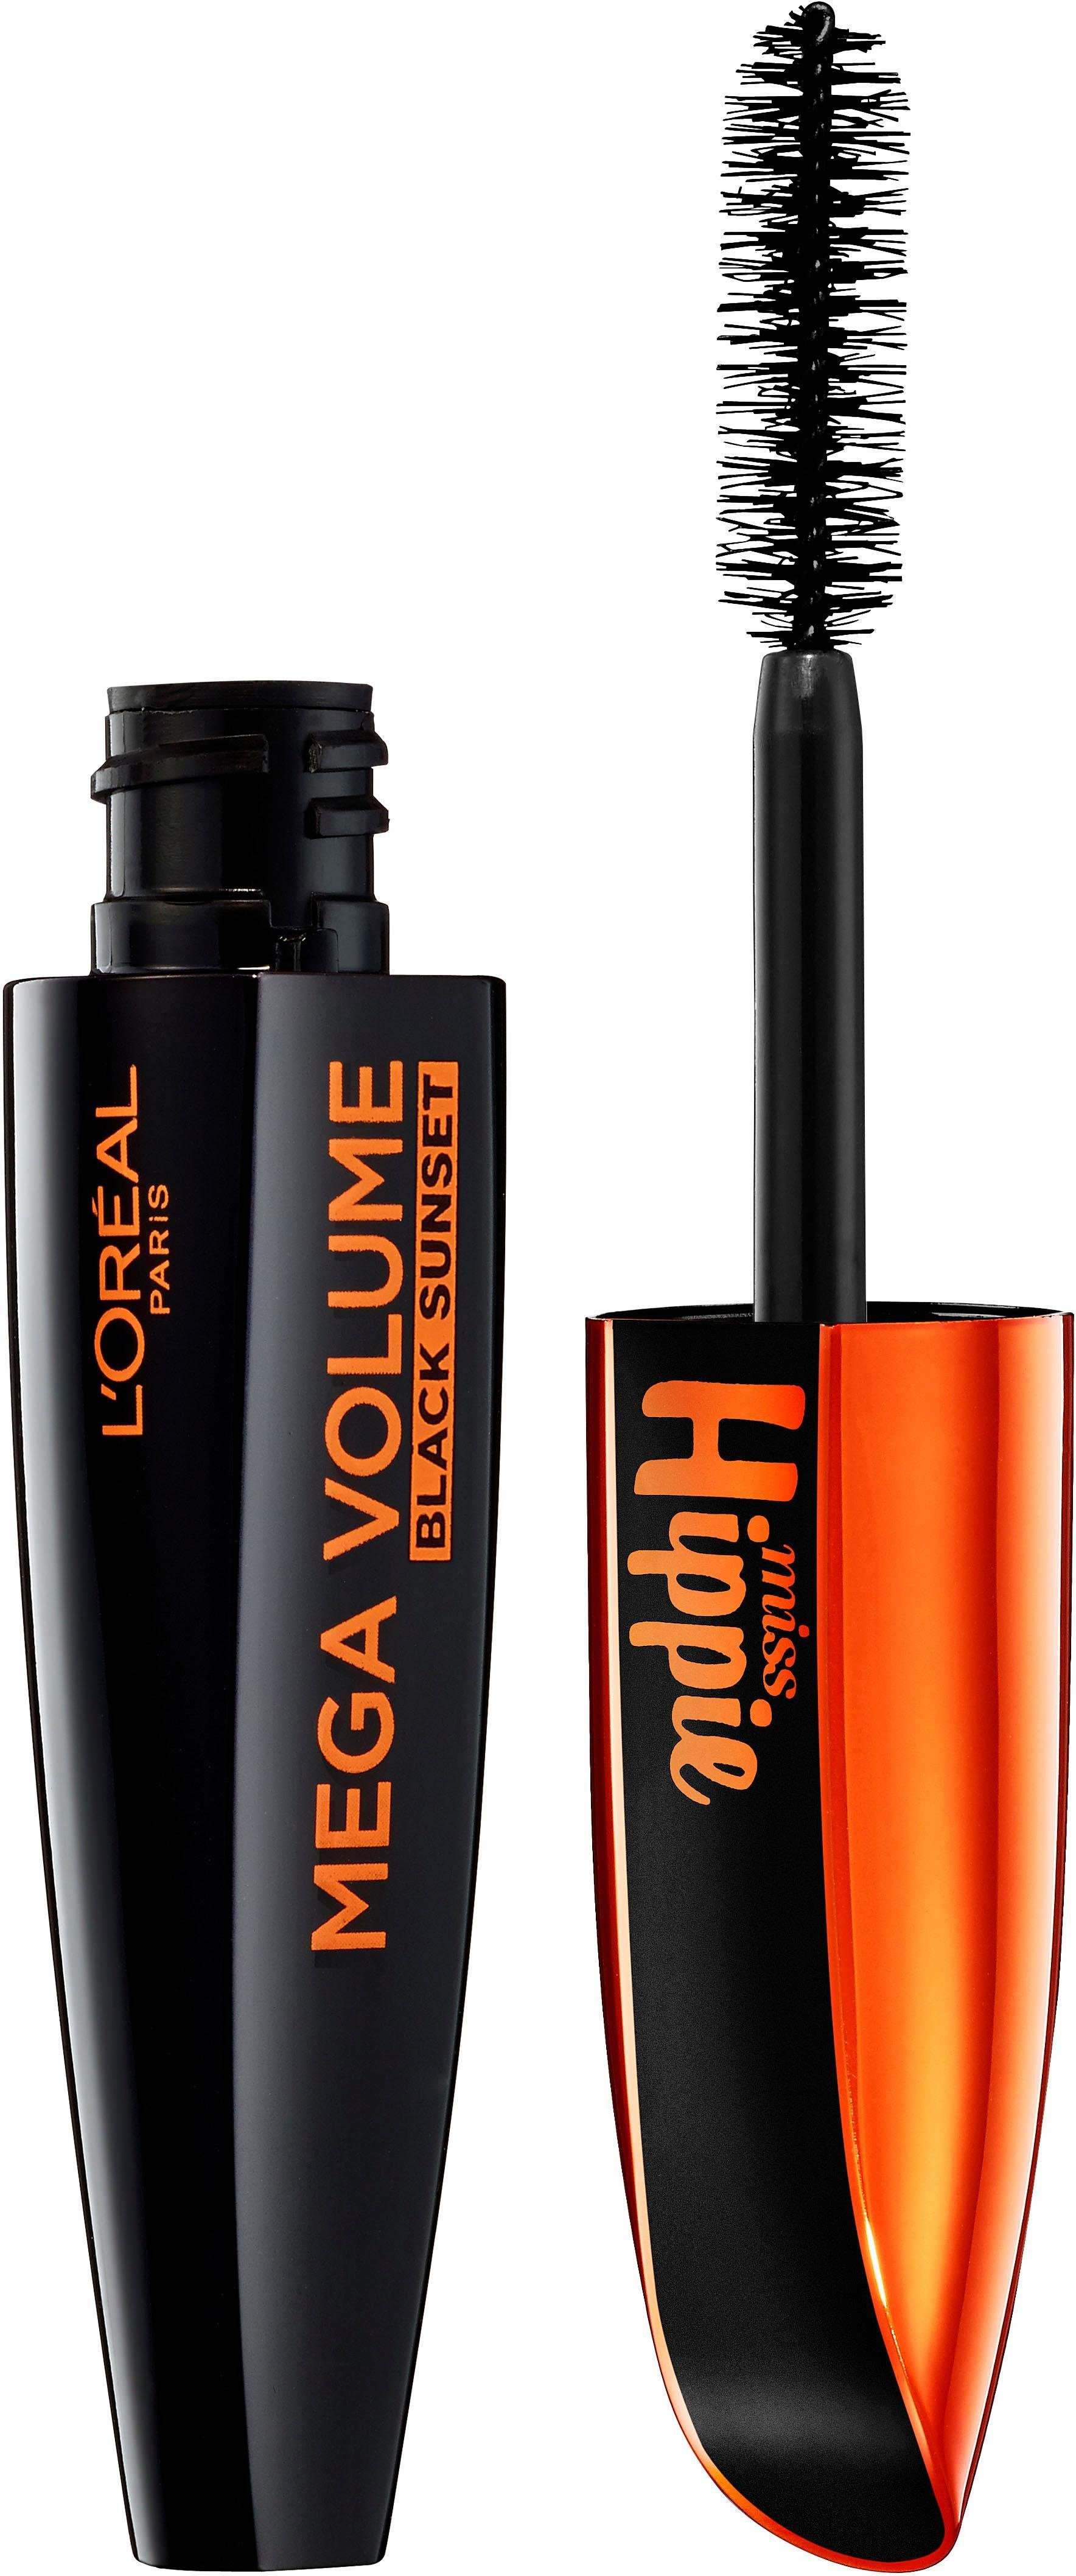 L'Oréal Paris, »Mega Volume Collagene Manga Hippie Black Sunset«, Mascara